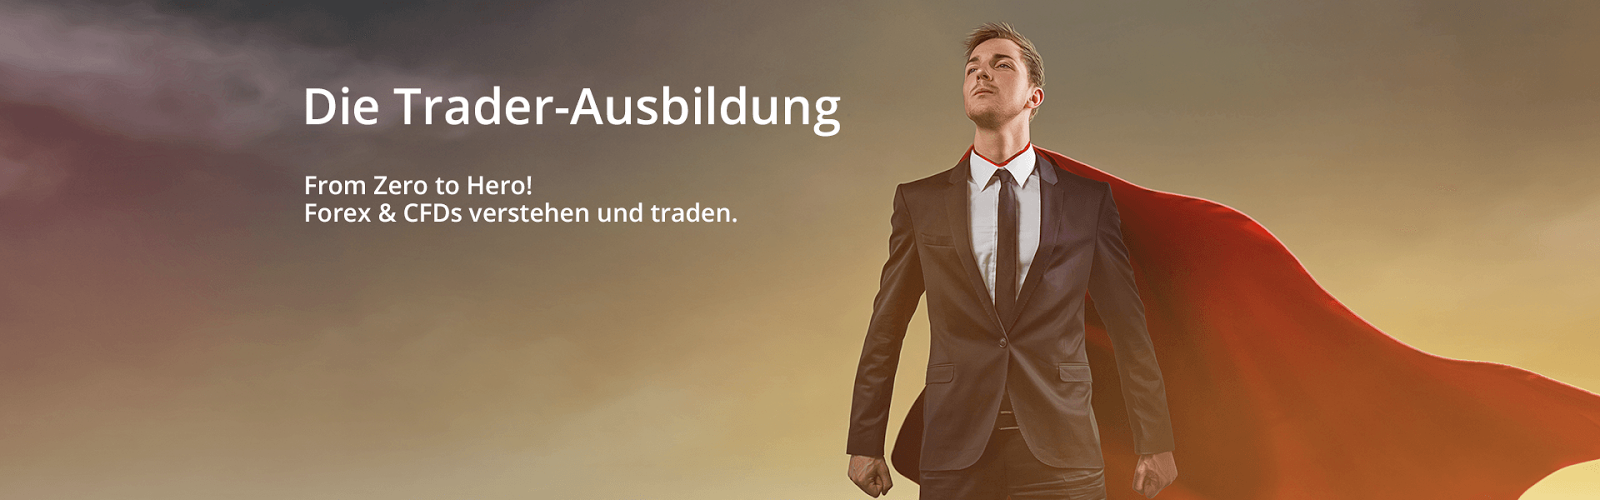 From Zero To Hero - Die Forex & CFD Traderausbildung